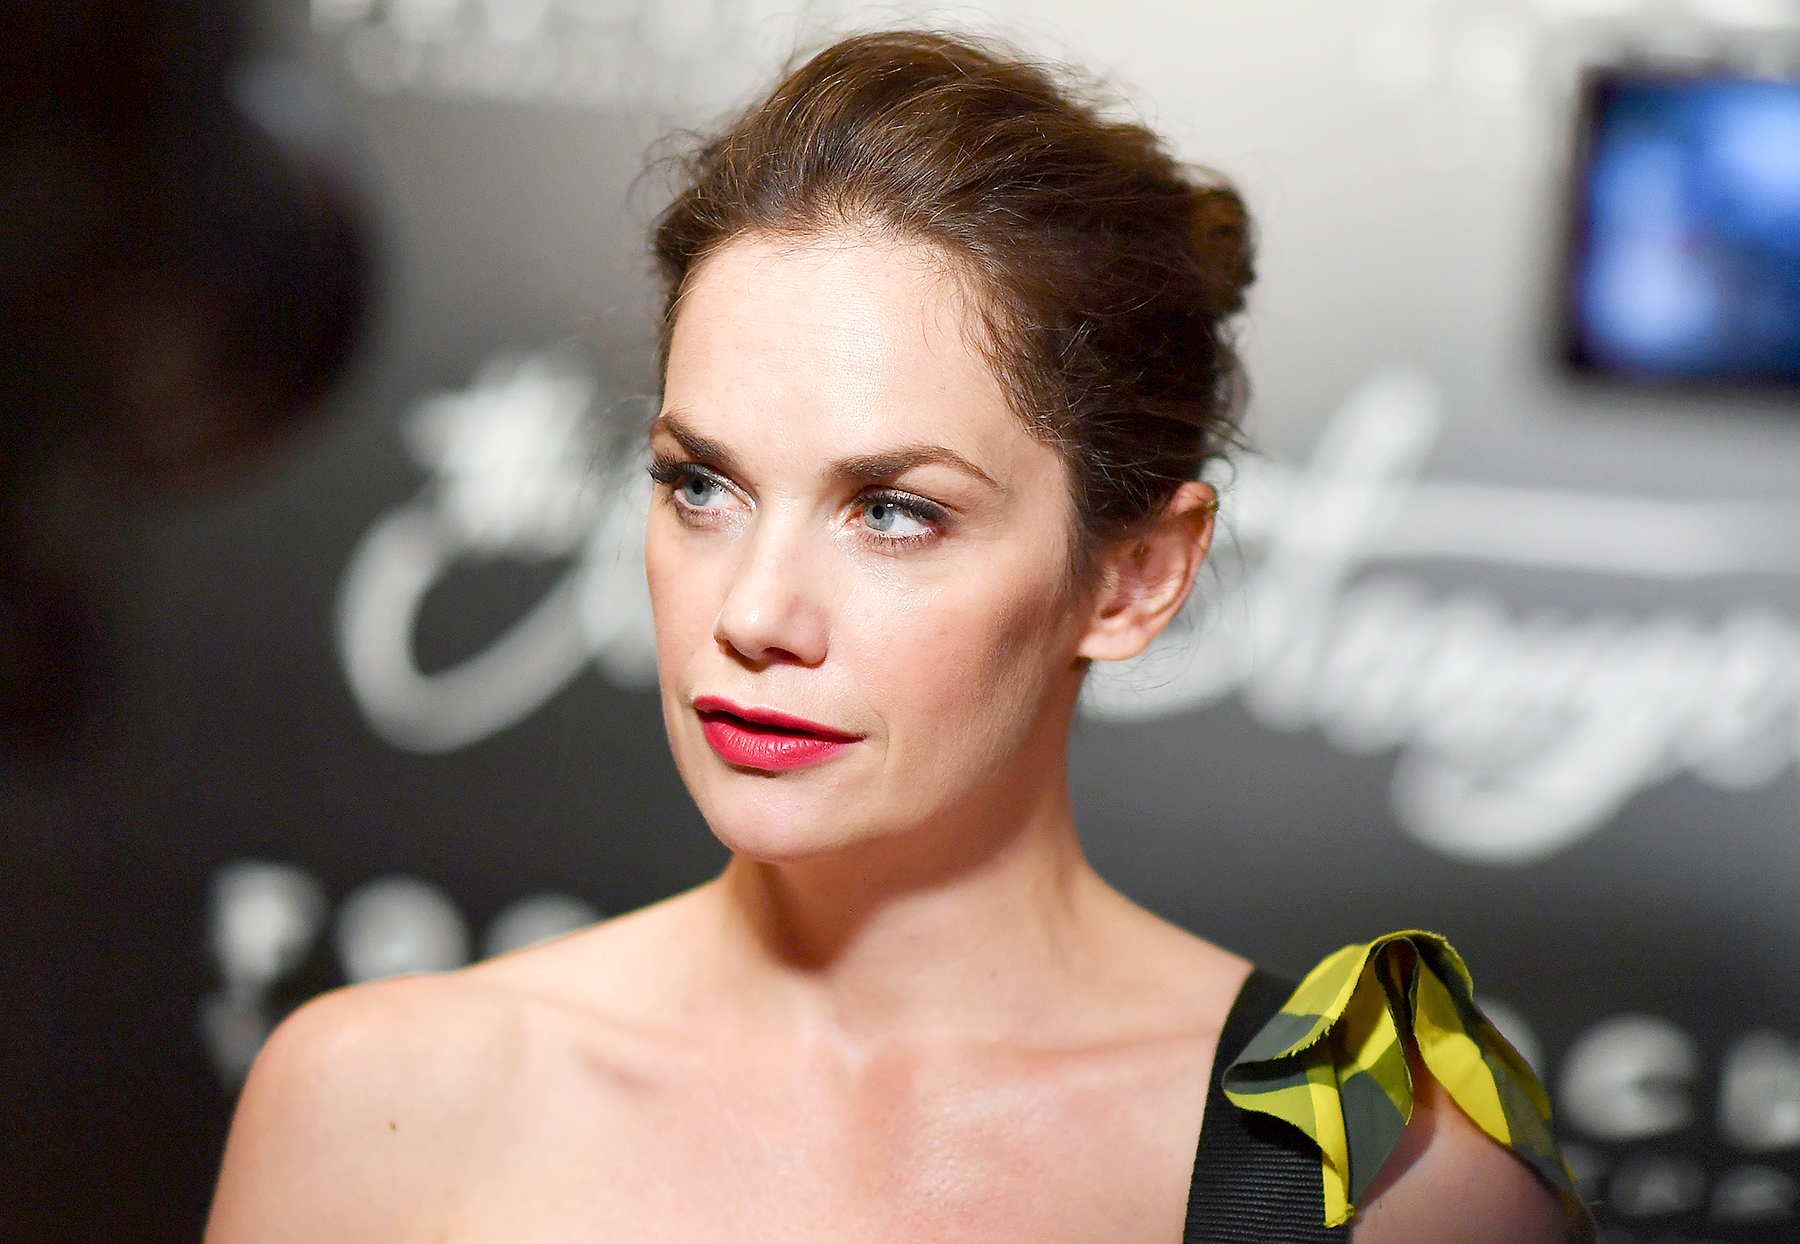 pictures Ruth wilson